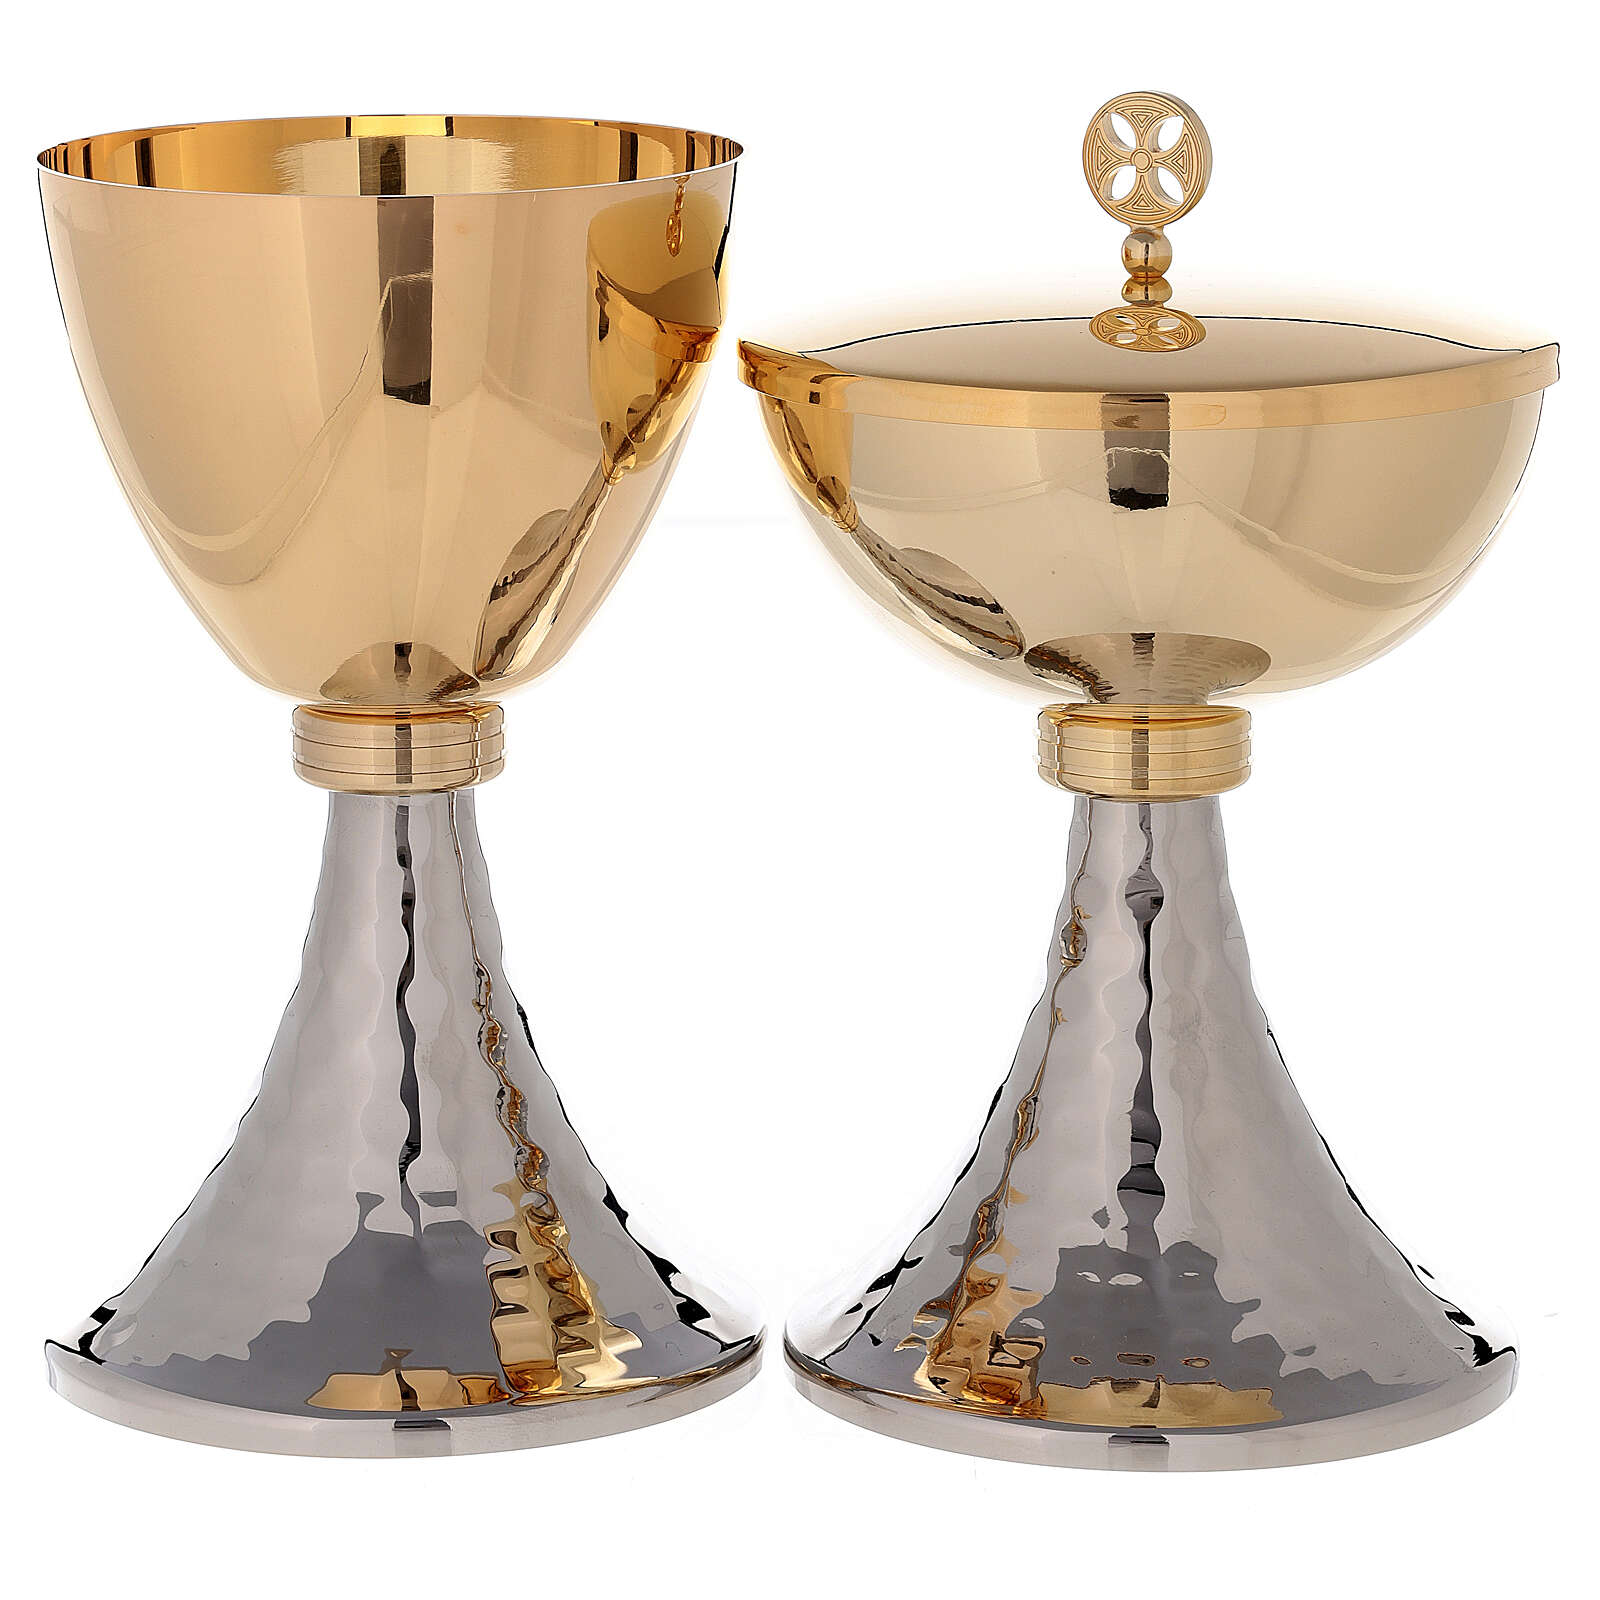 Chalice and ciborium gold plated brass and hammered base 4